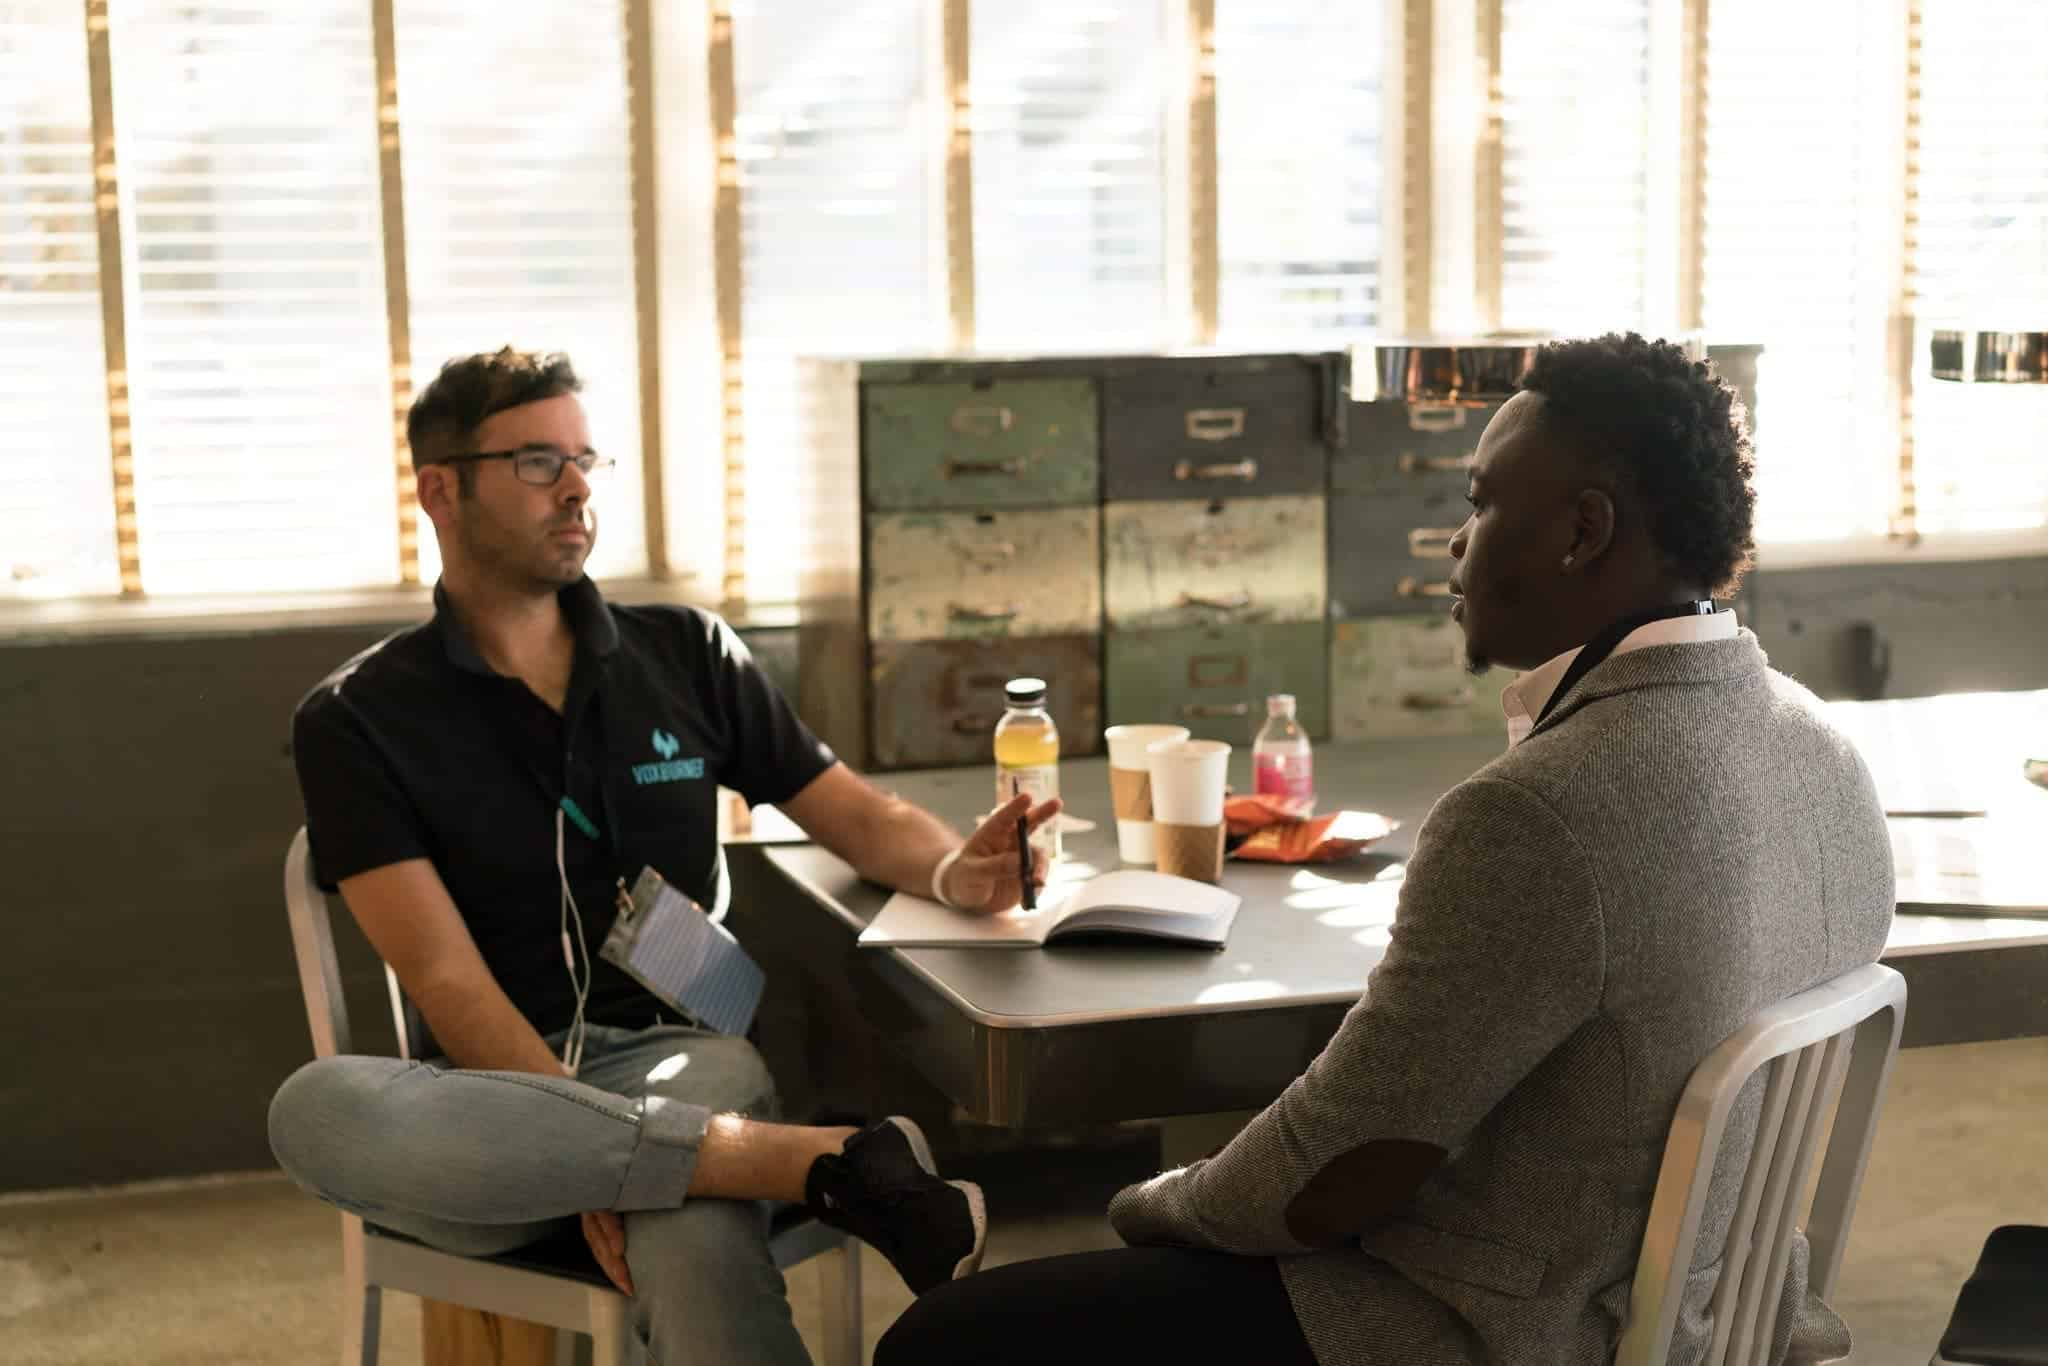 Two men sitting at a table